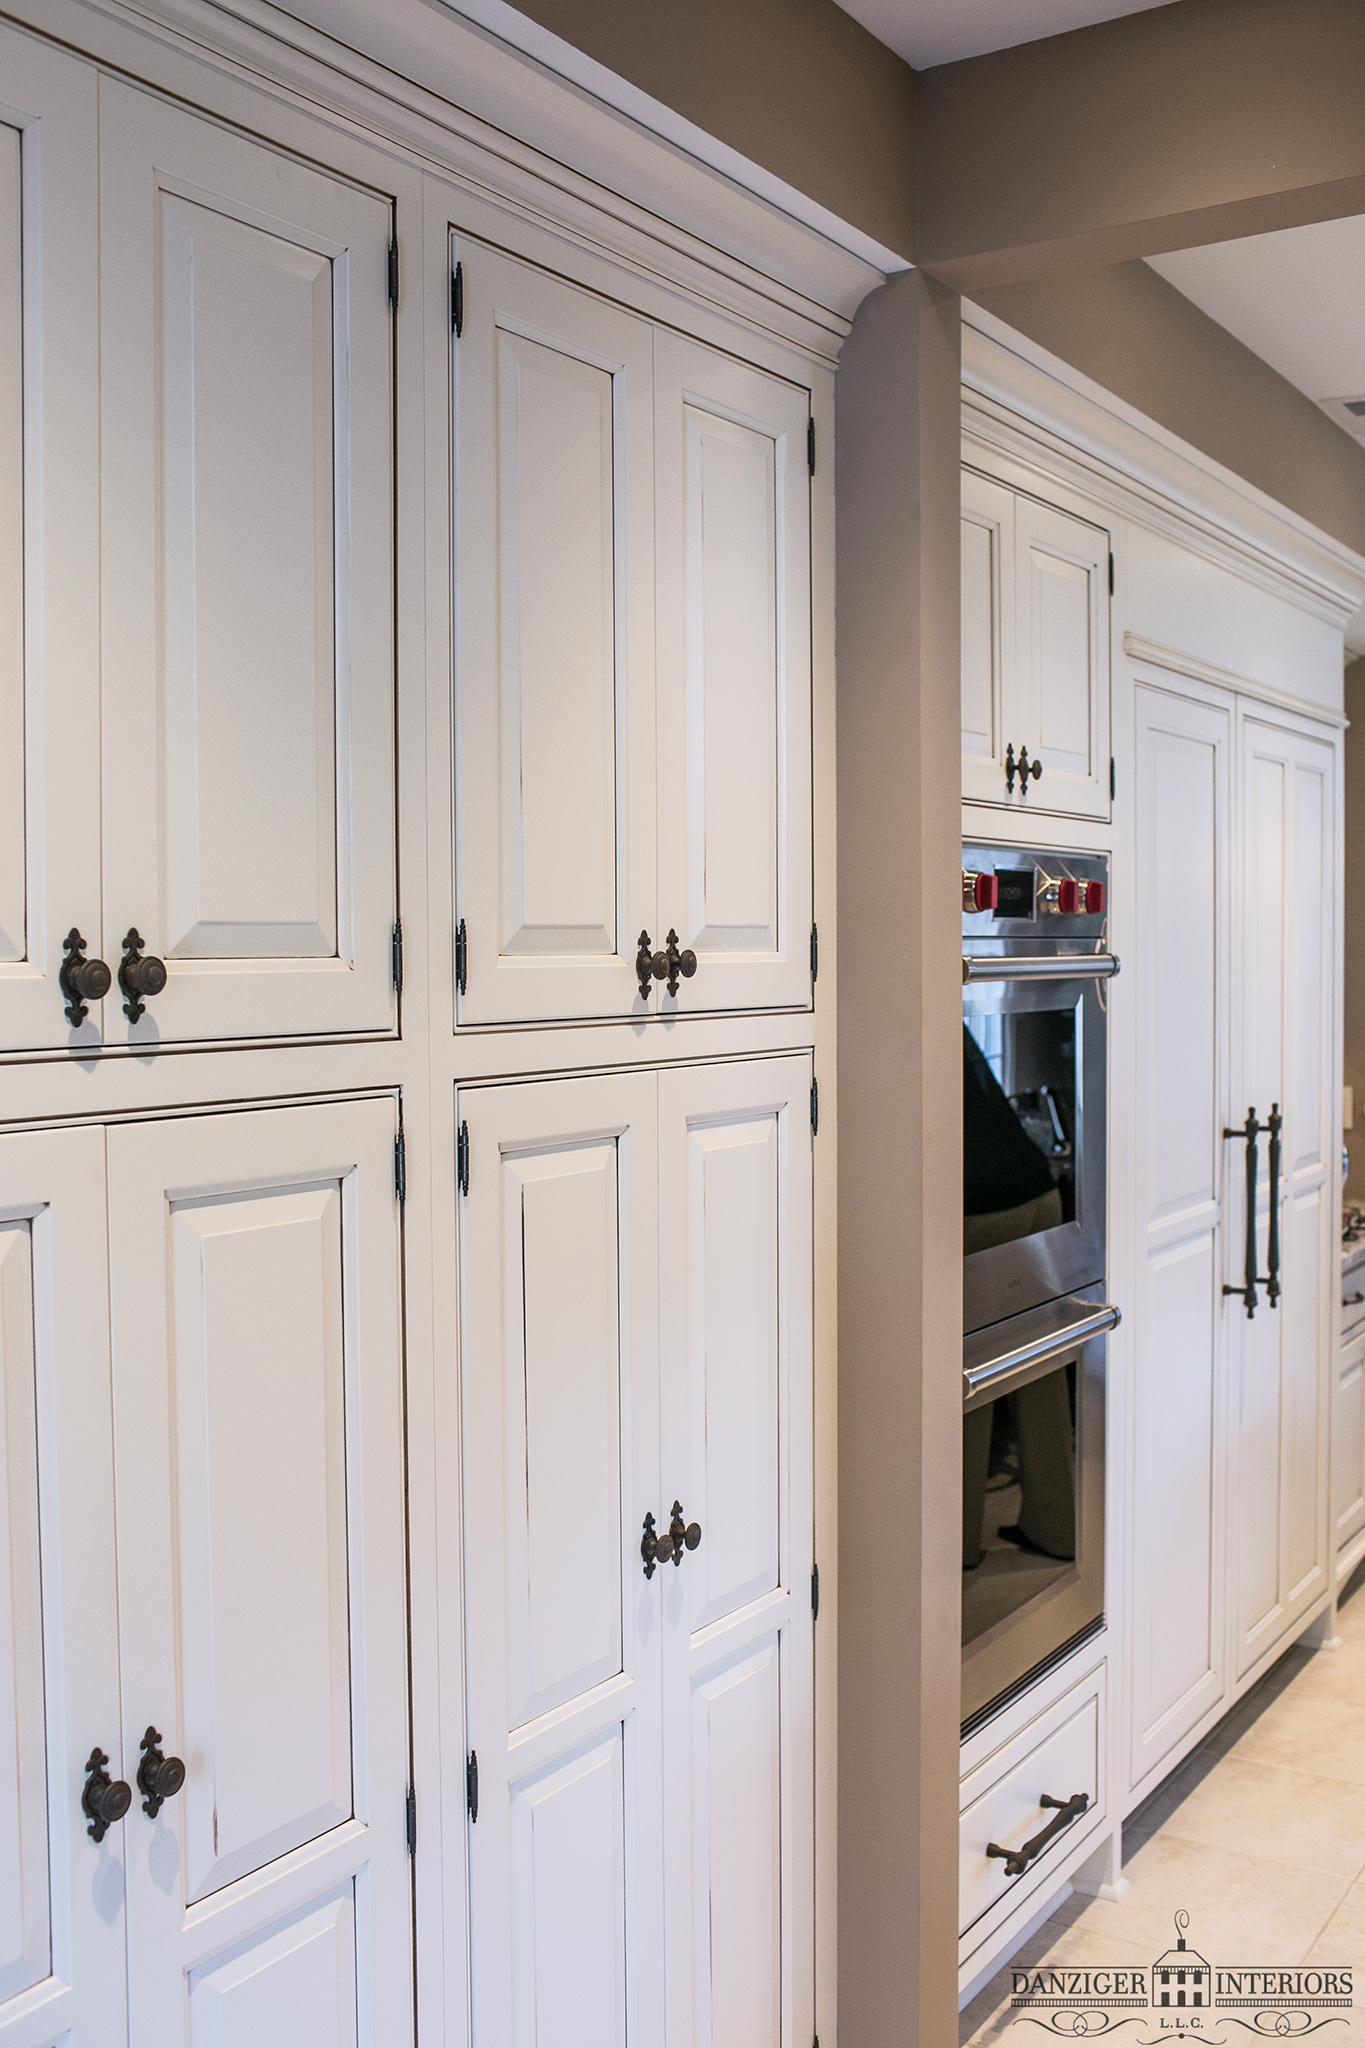 Inset Pantry Flanks Appliance wall